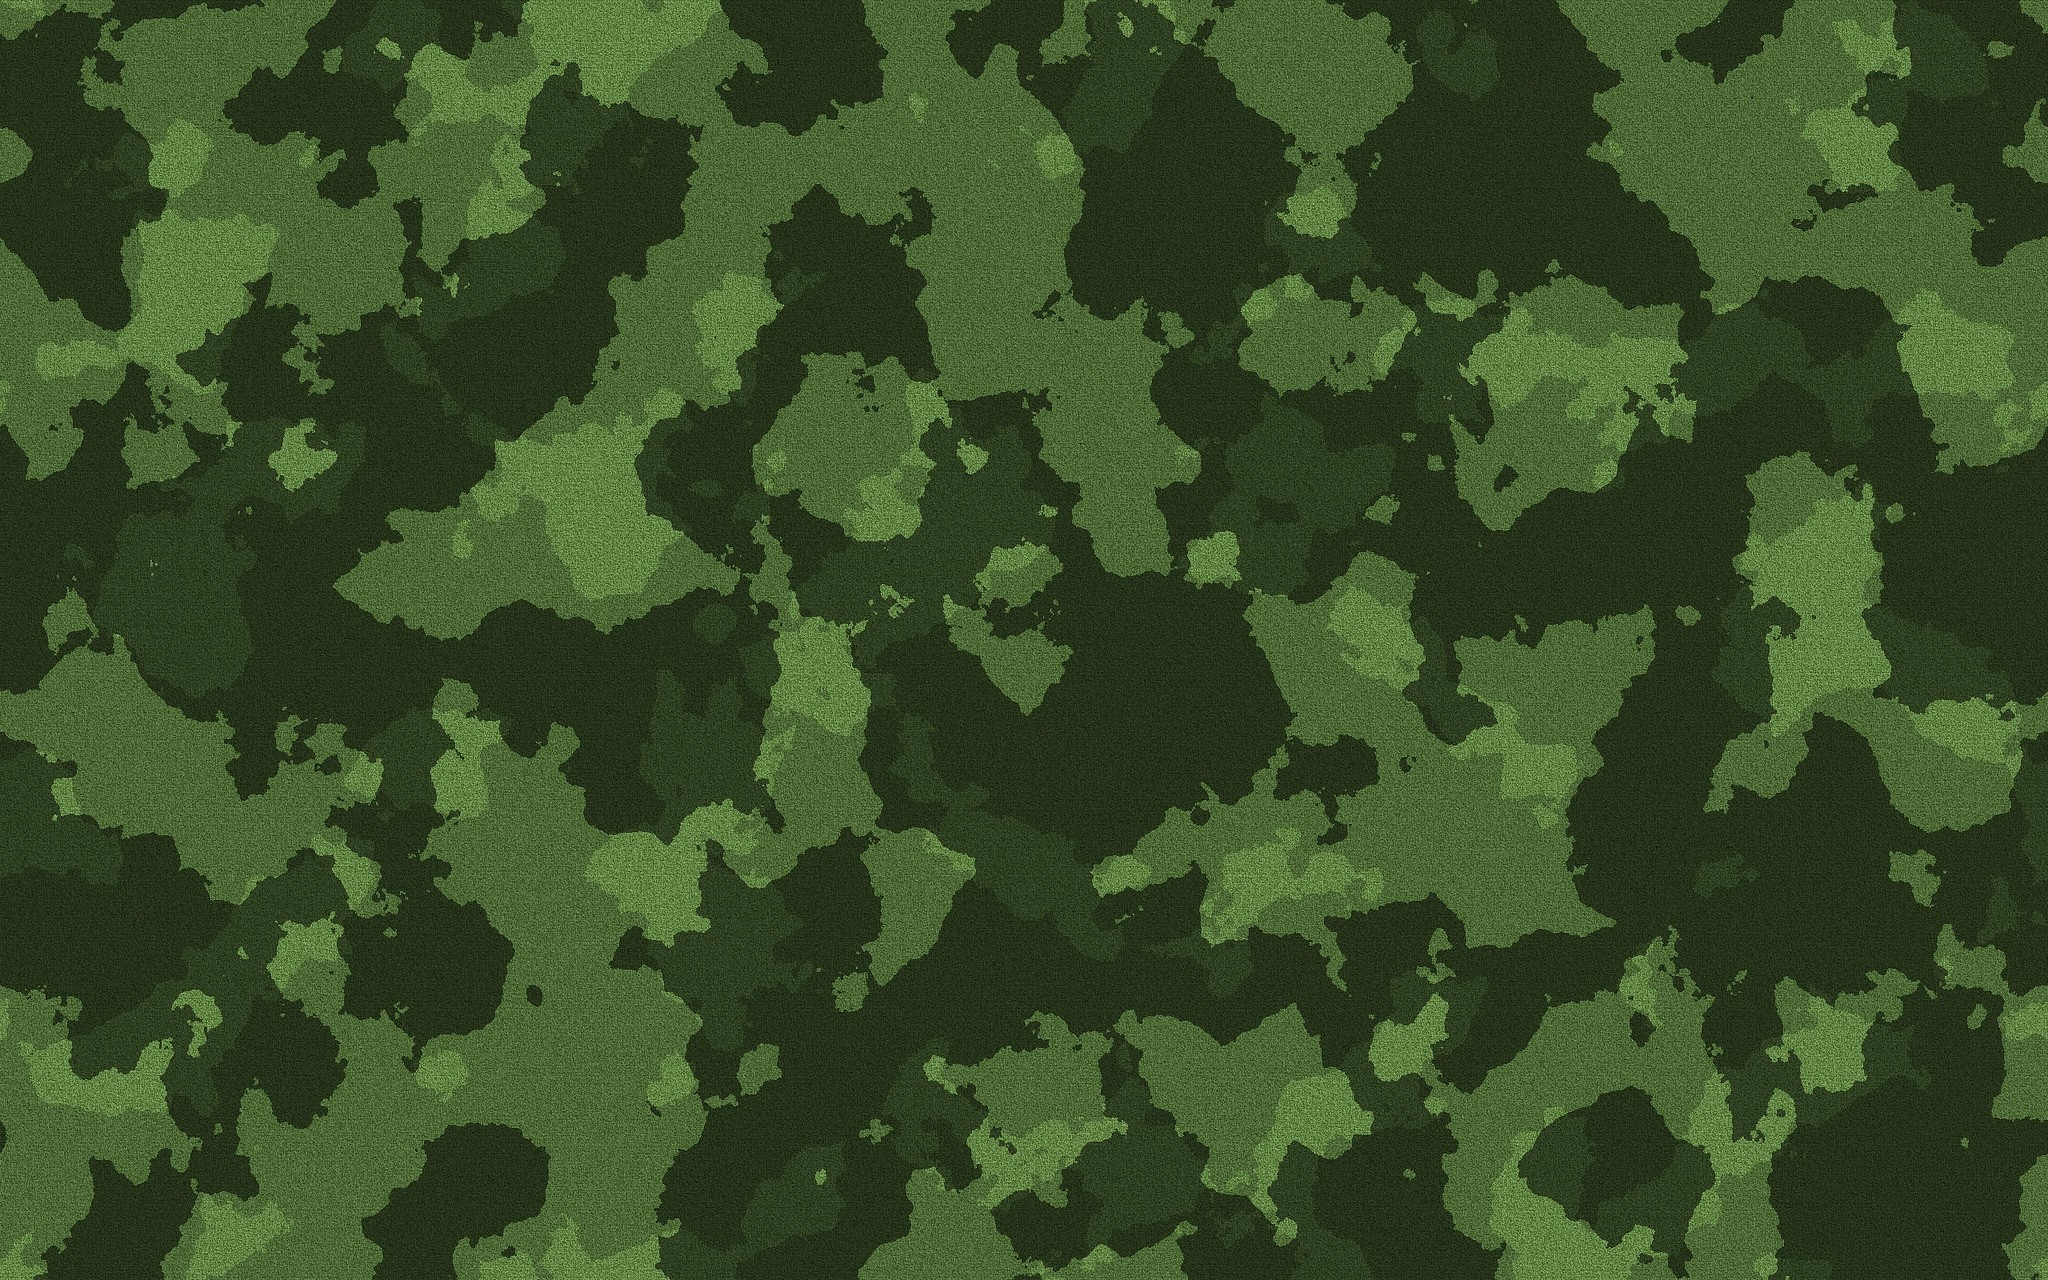 army background pictures 63 pictures army background pictures 63 pictures